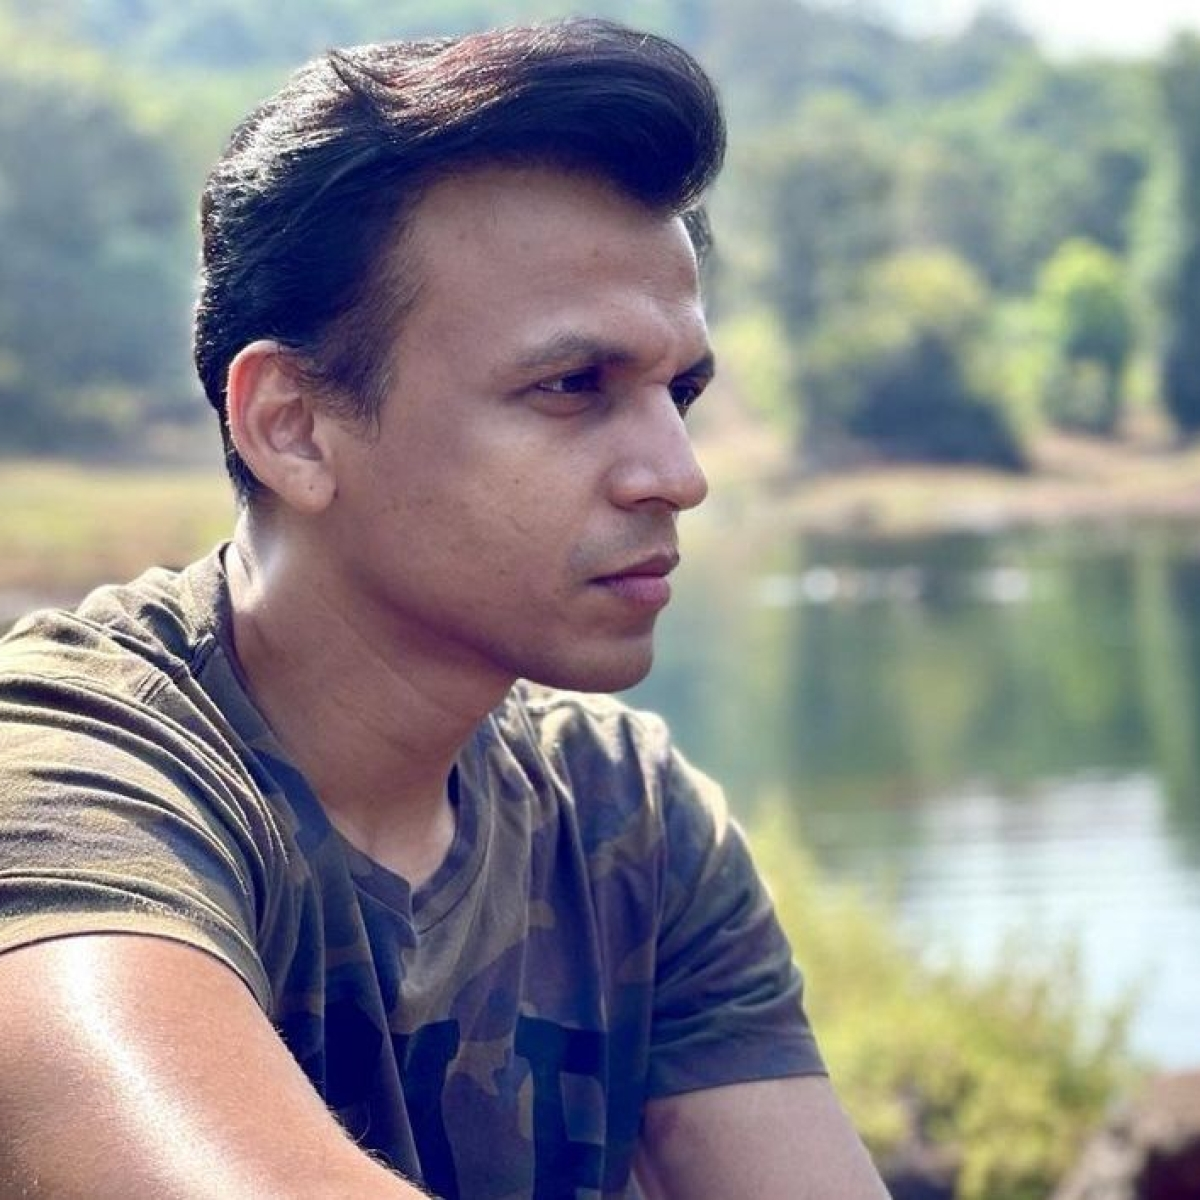 'Focus is on sad stories': 'Indian Idol 1' winner Abhijeet Sawant calls out musical reality show